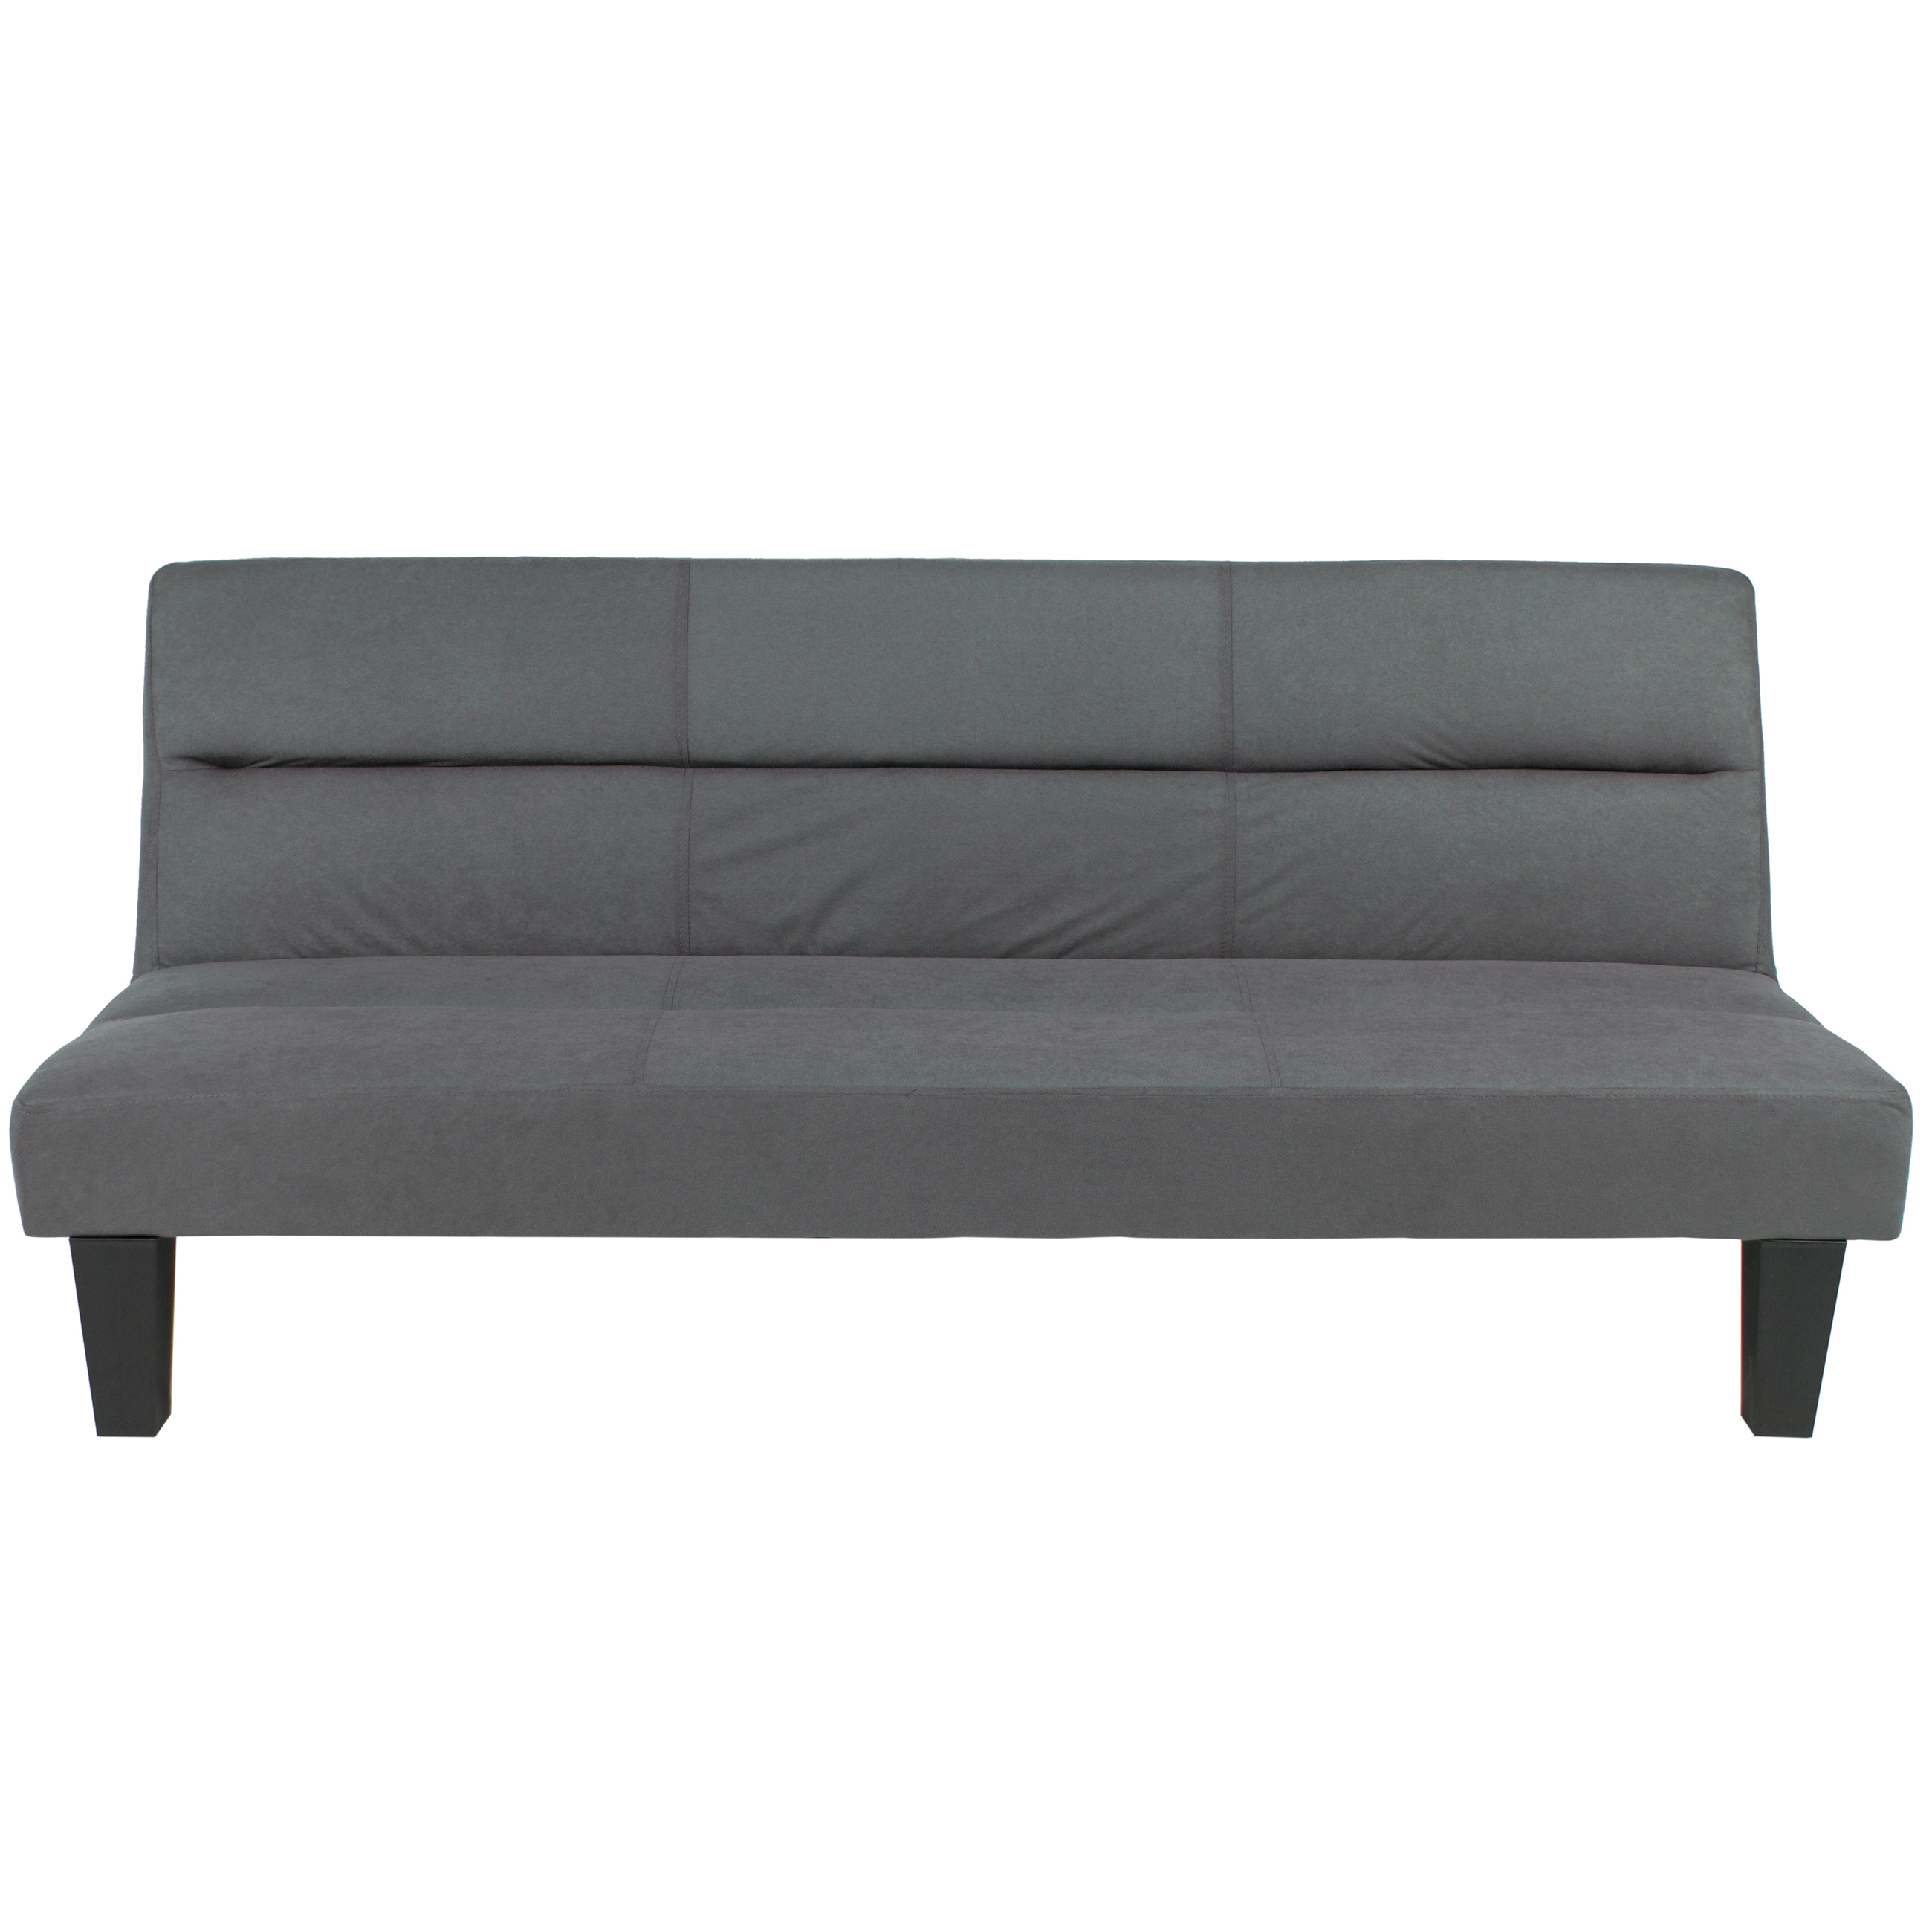 Click here to buy Best Choice Products Microfiber Futon Sofa, Black by Best Choice Products.